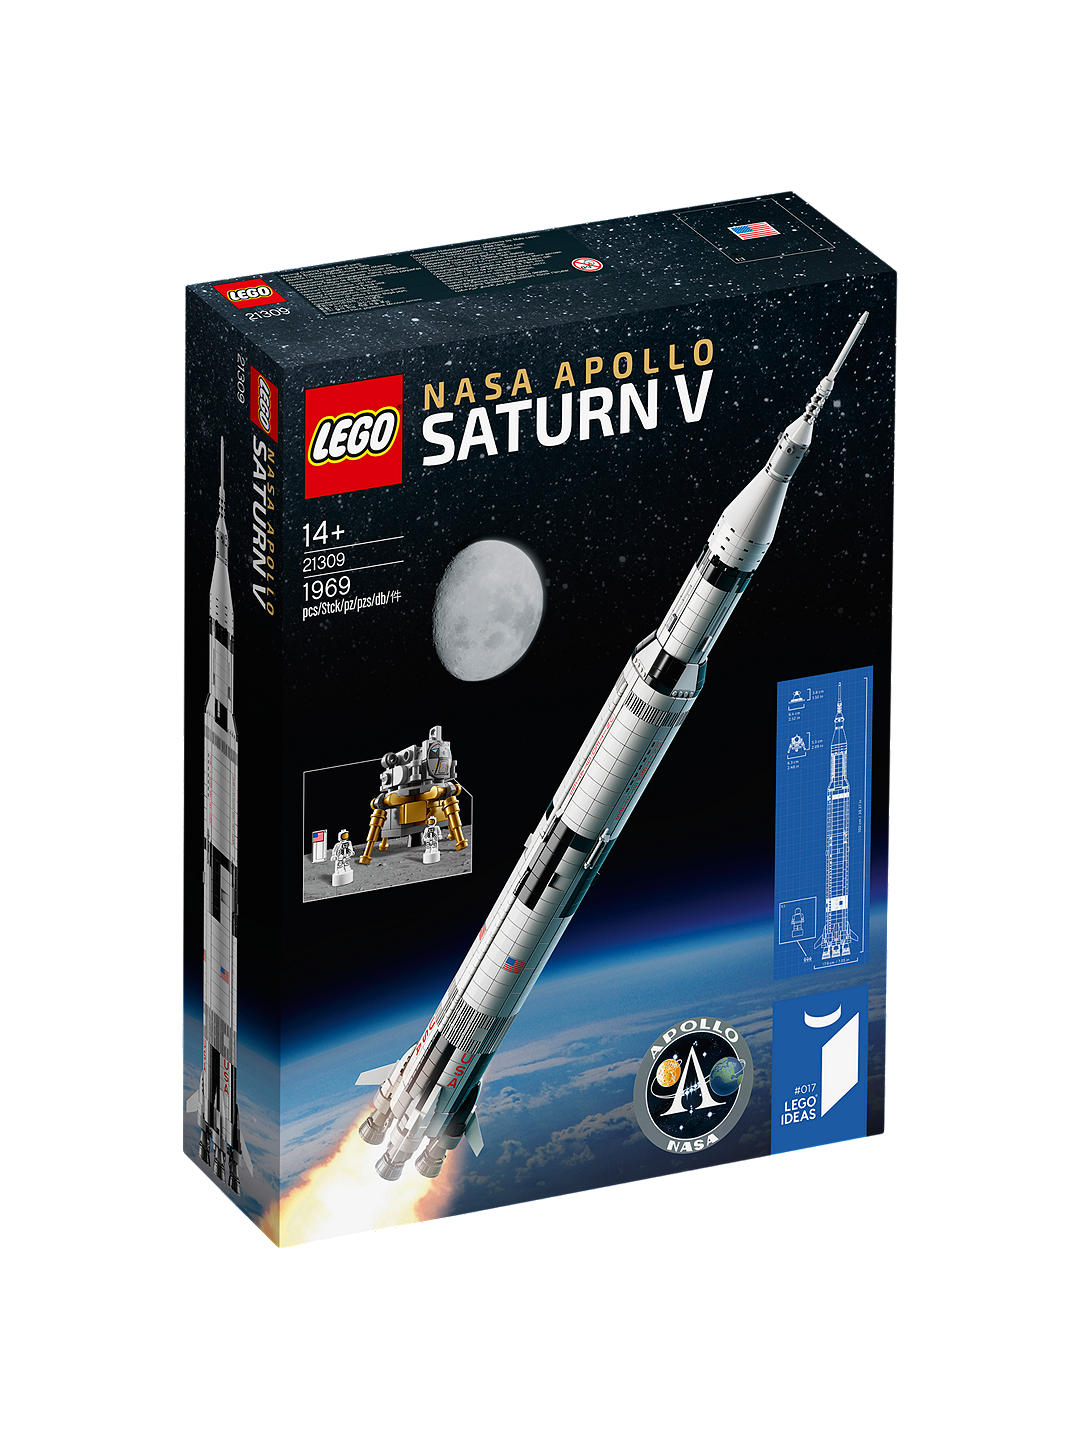 Lego Saturn 5 Rocket